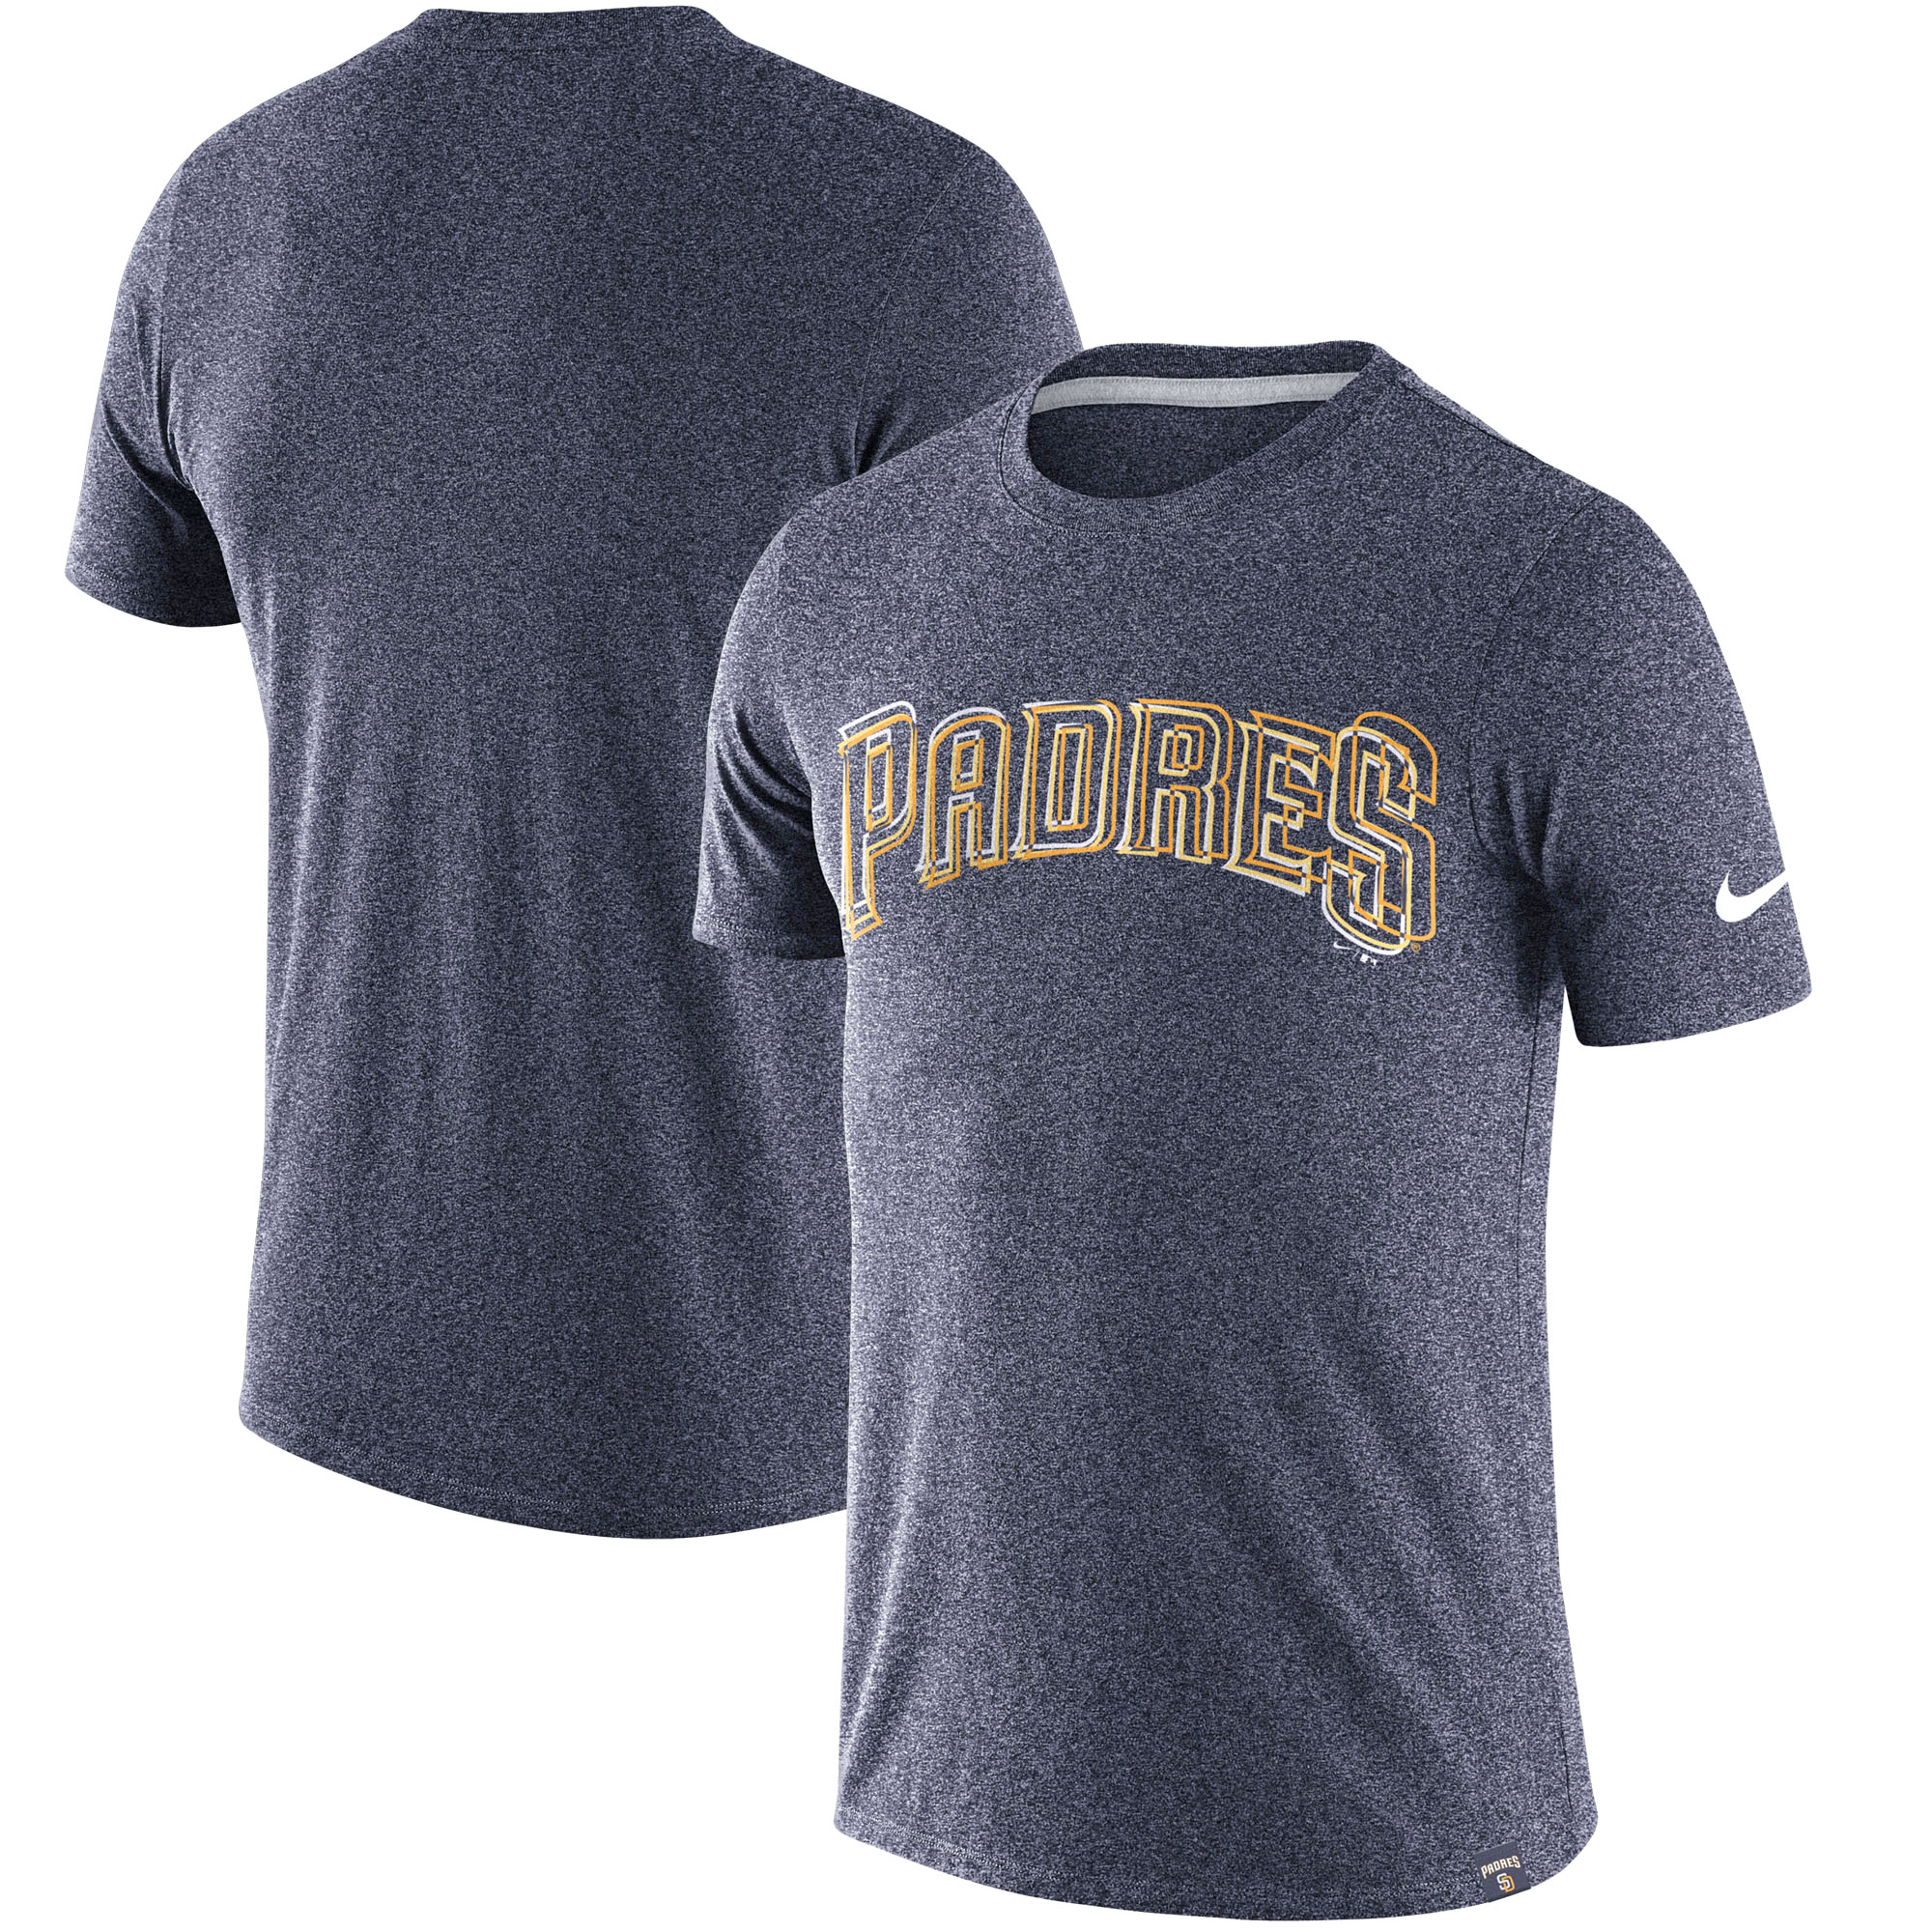 Men's Nike Heathered Navy San Diego Padres Marled Wordmark T-Shirt